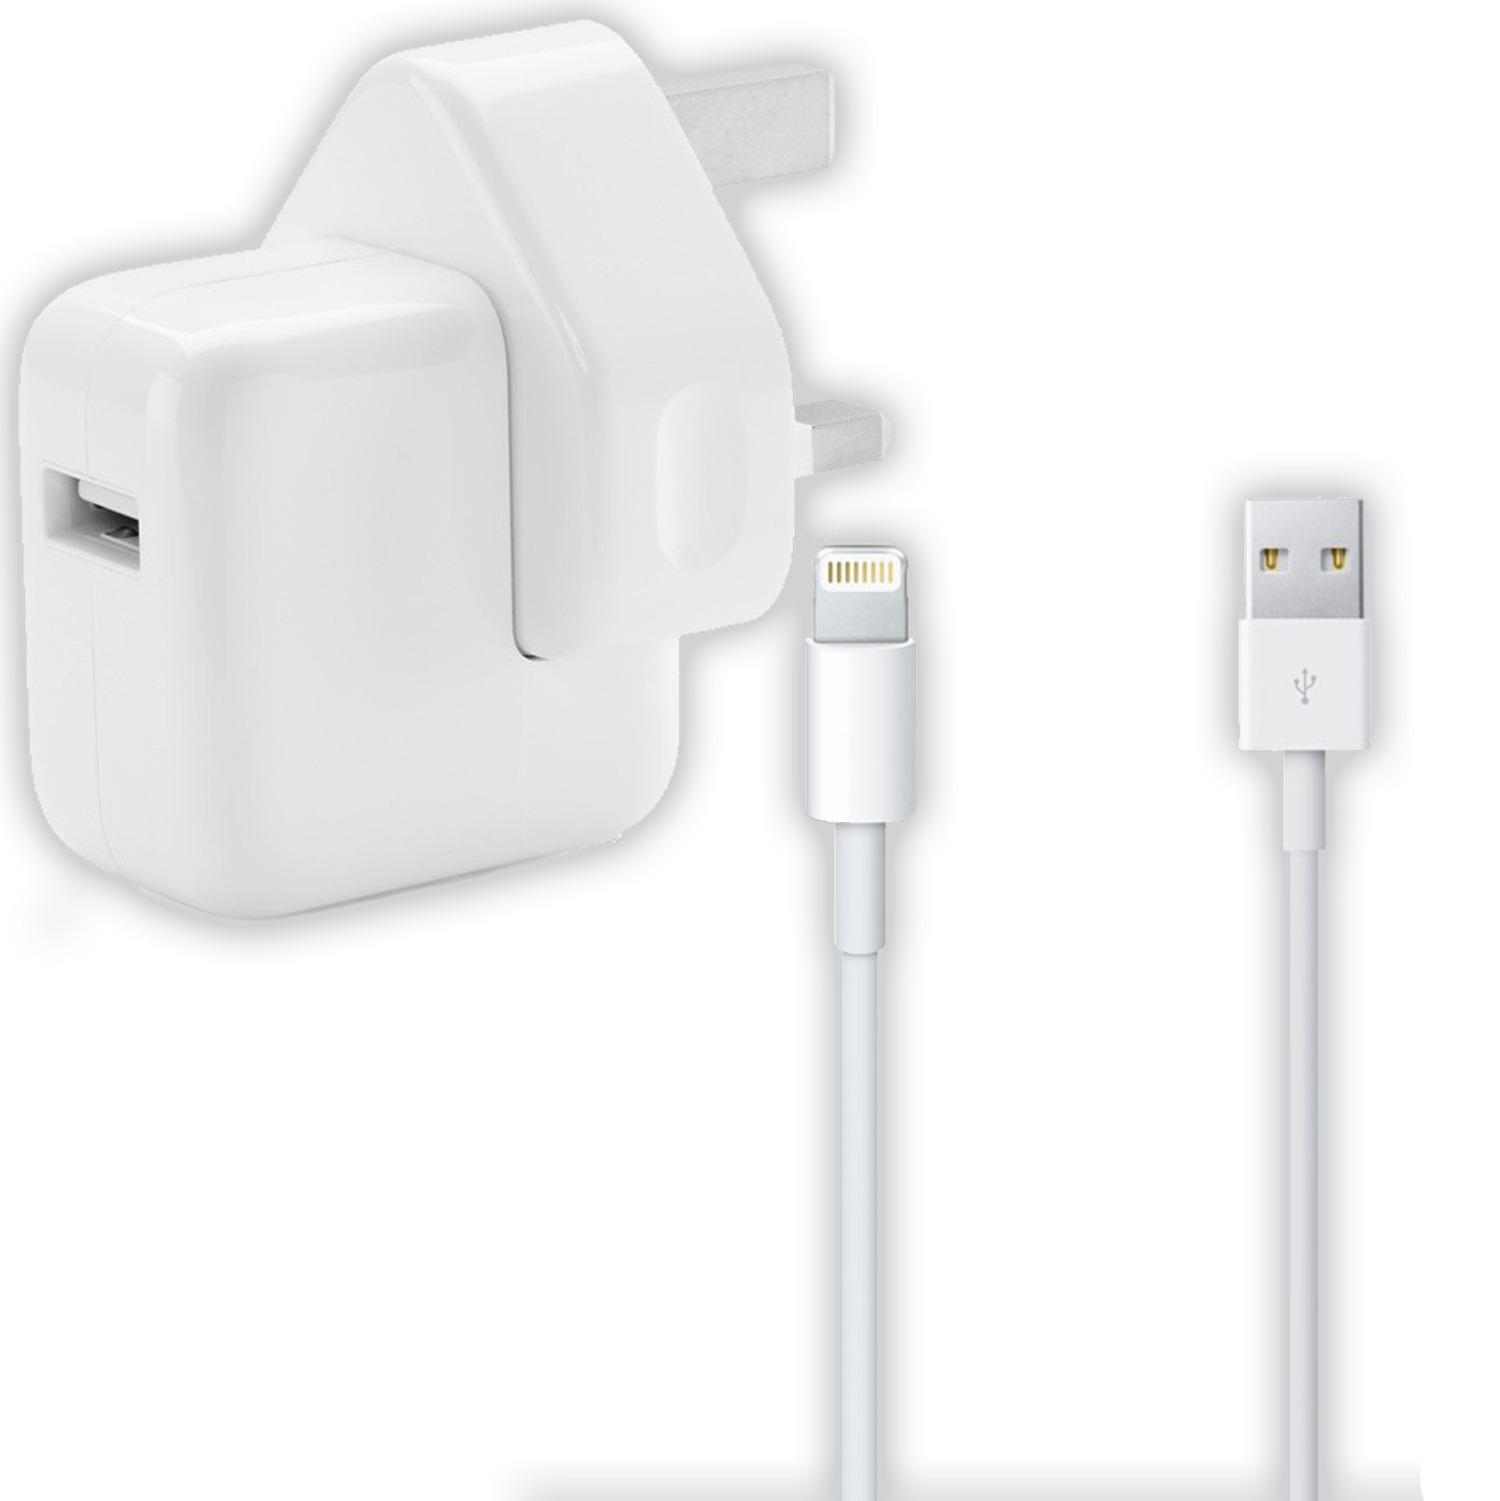 Apple 10w Mains Charger & Genuine Lightning Cable for iPhone 6 5 iPad 4 & Air